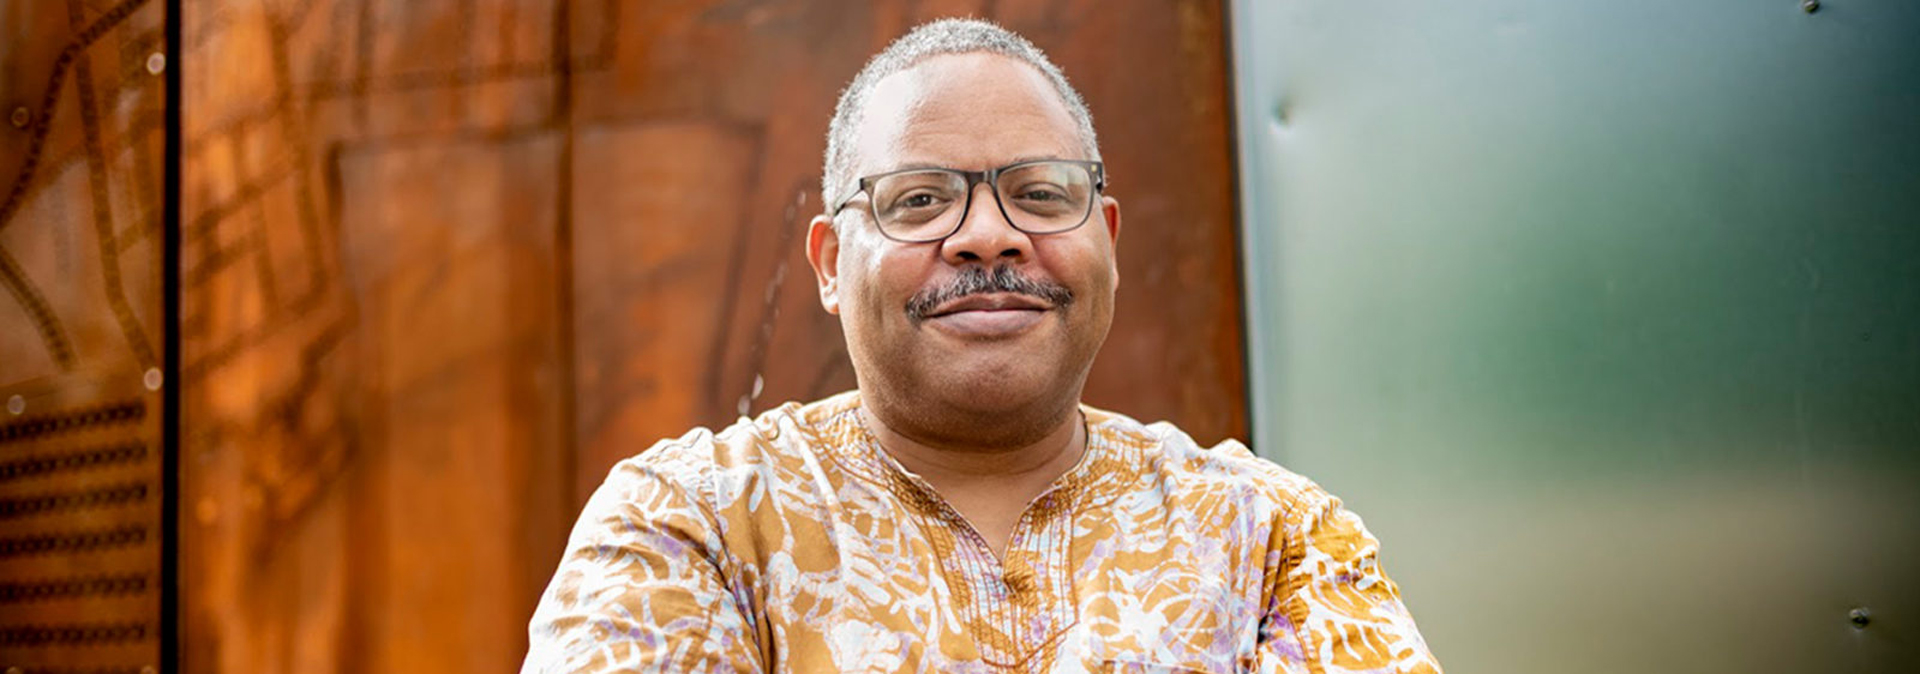 Kofi Boone was recently featured by the State Climate Policy Network on the Importance of Community-Led Design in Creating Just and Livable Cities. All across the country, members of the State Climate Policy Network (SCPN) are fighting to make an impact on climate change in their communities.